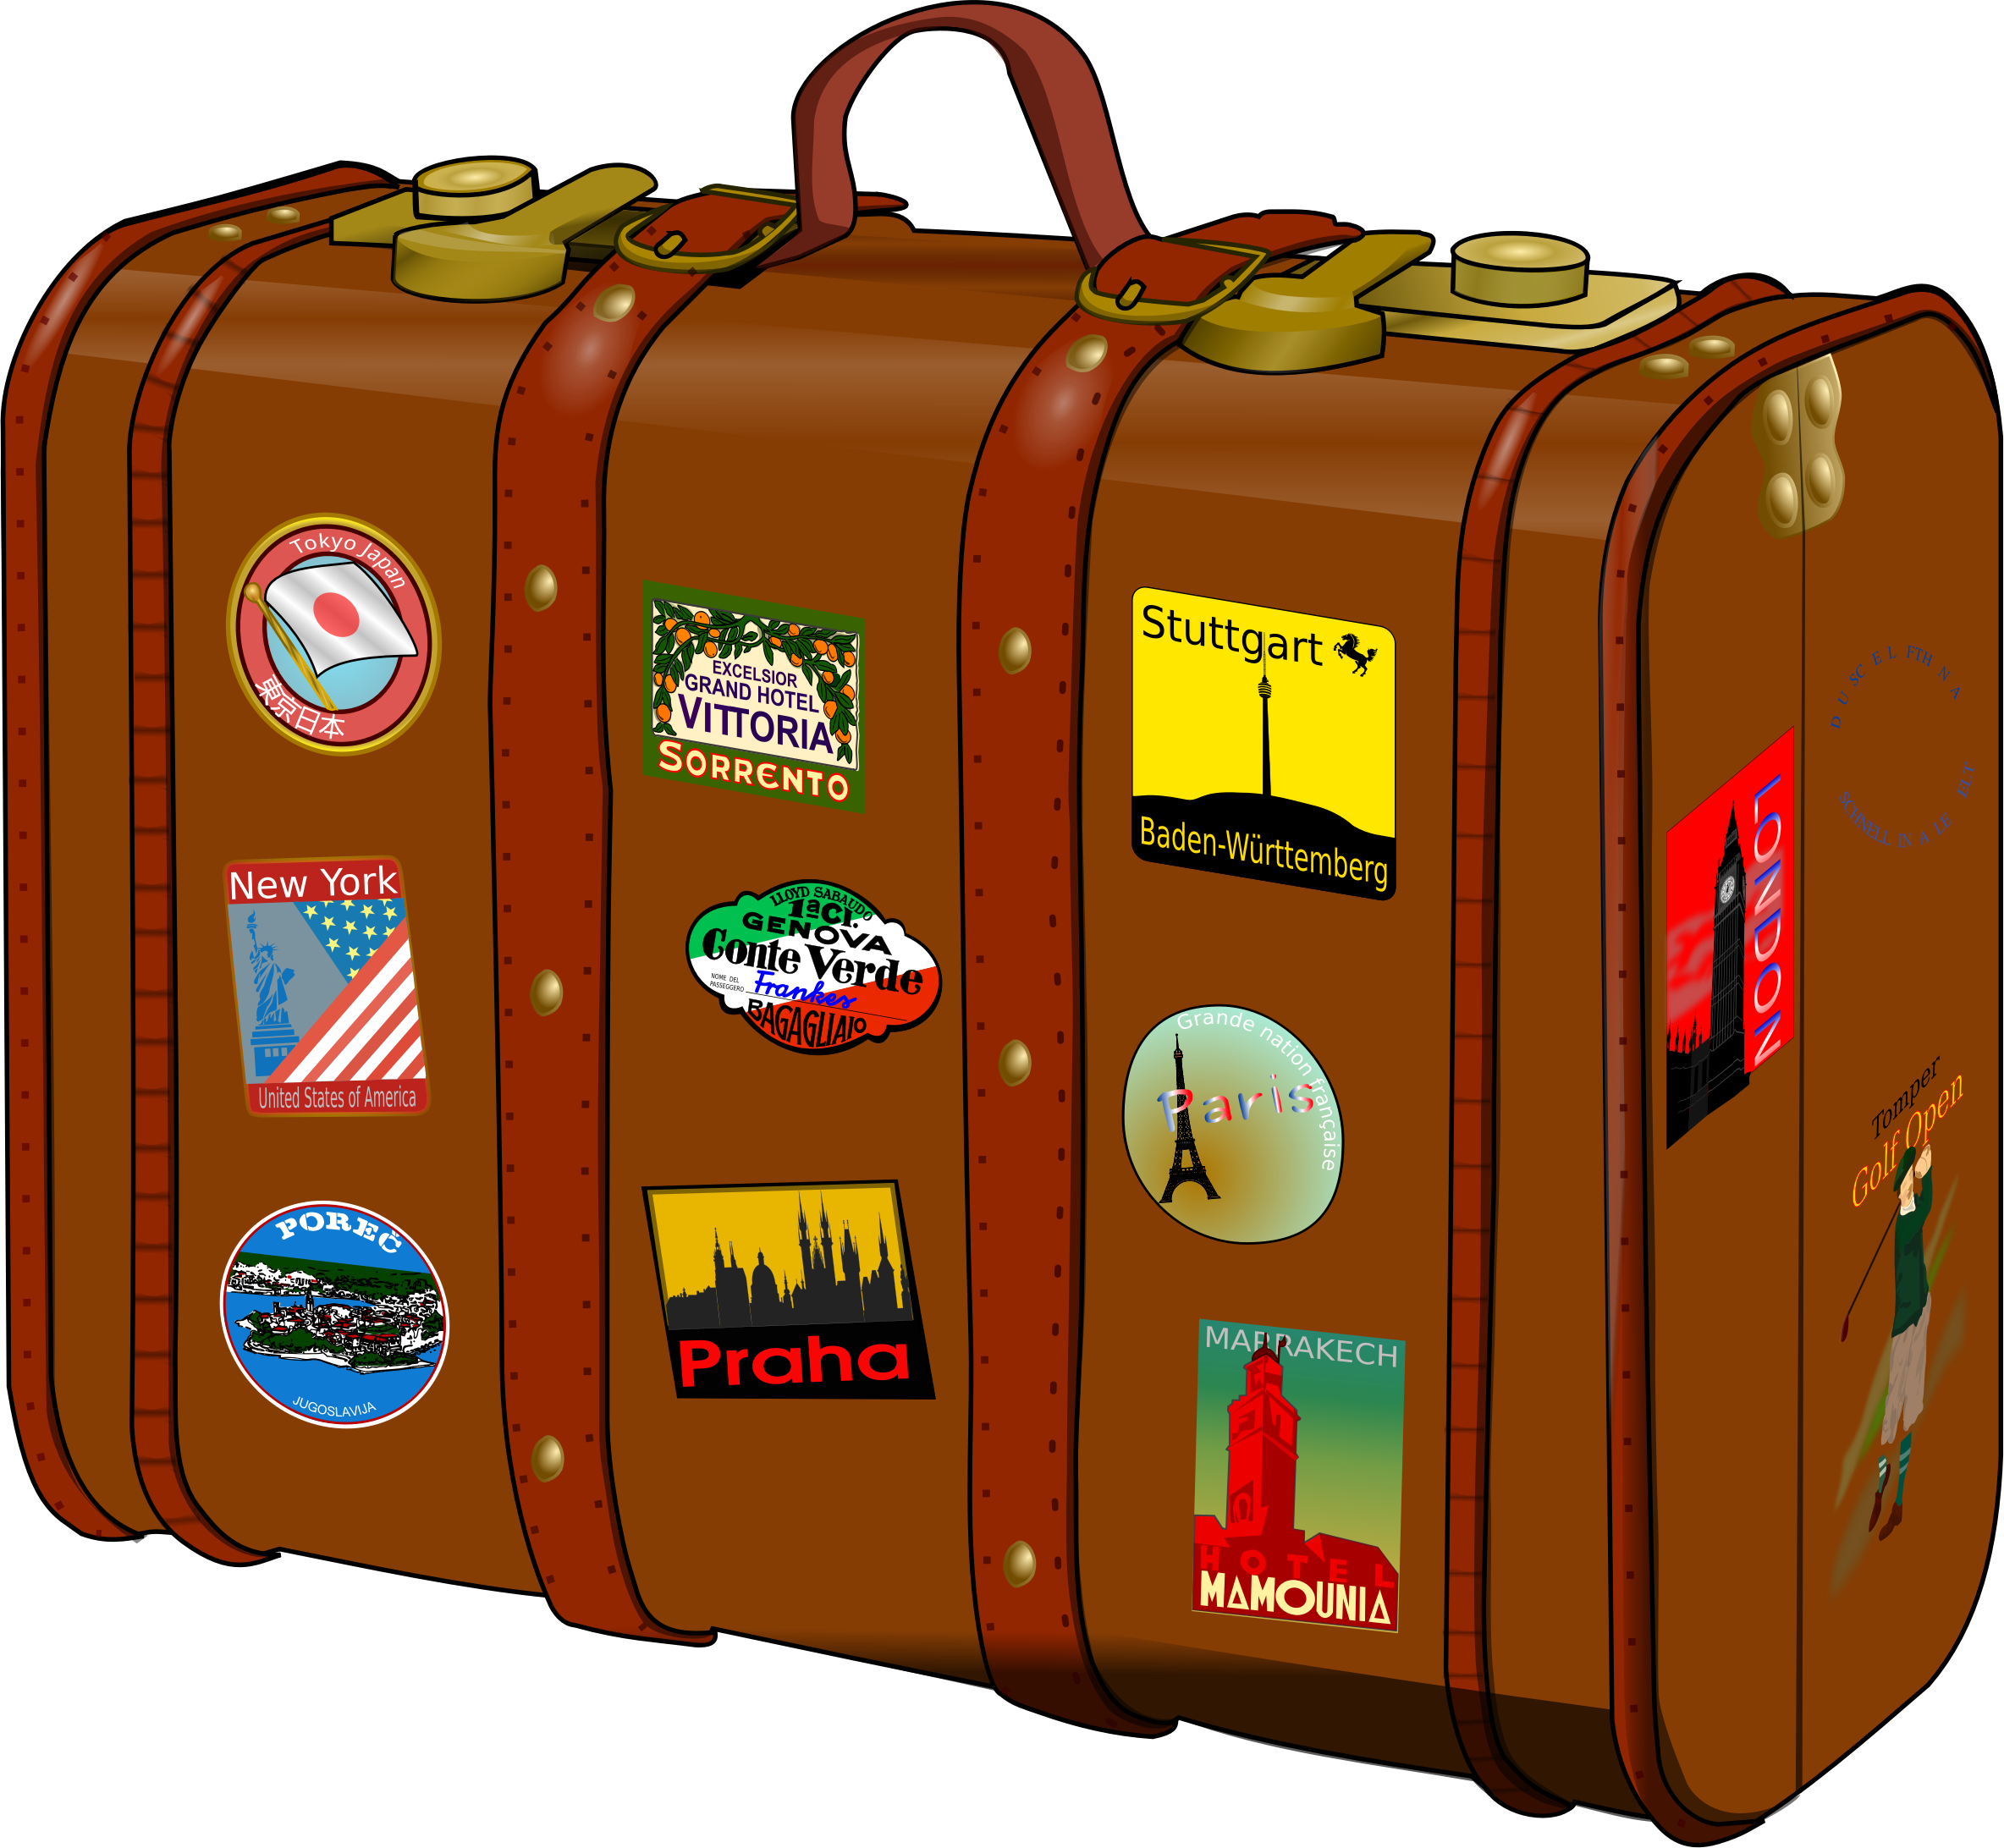 Luggage clipart bon voyage. Suitcase with stickers no